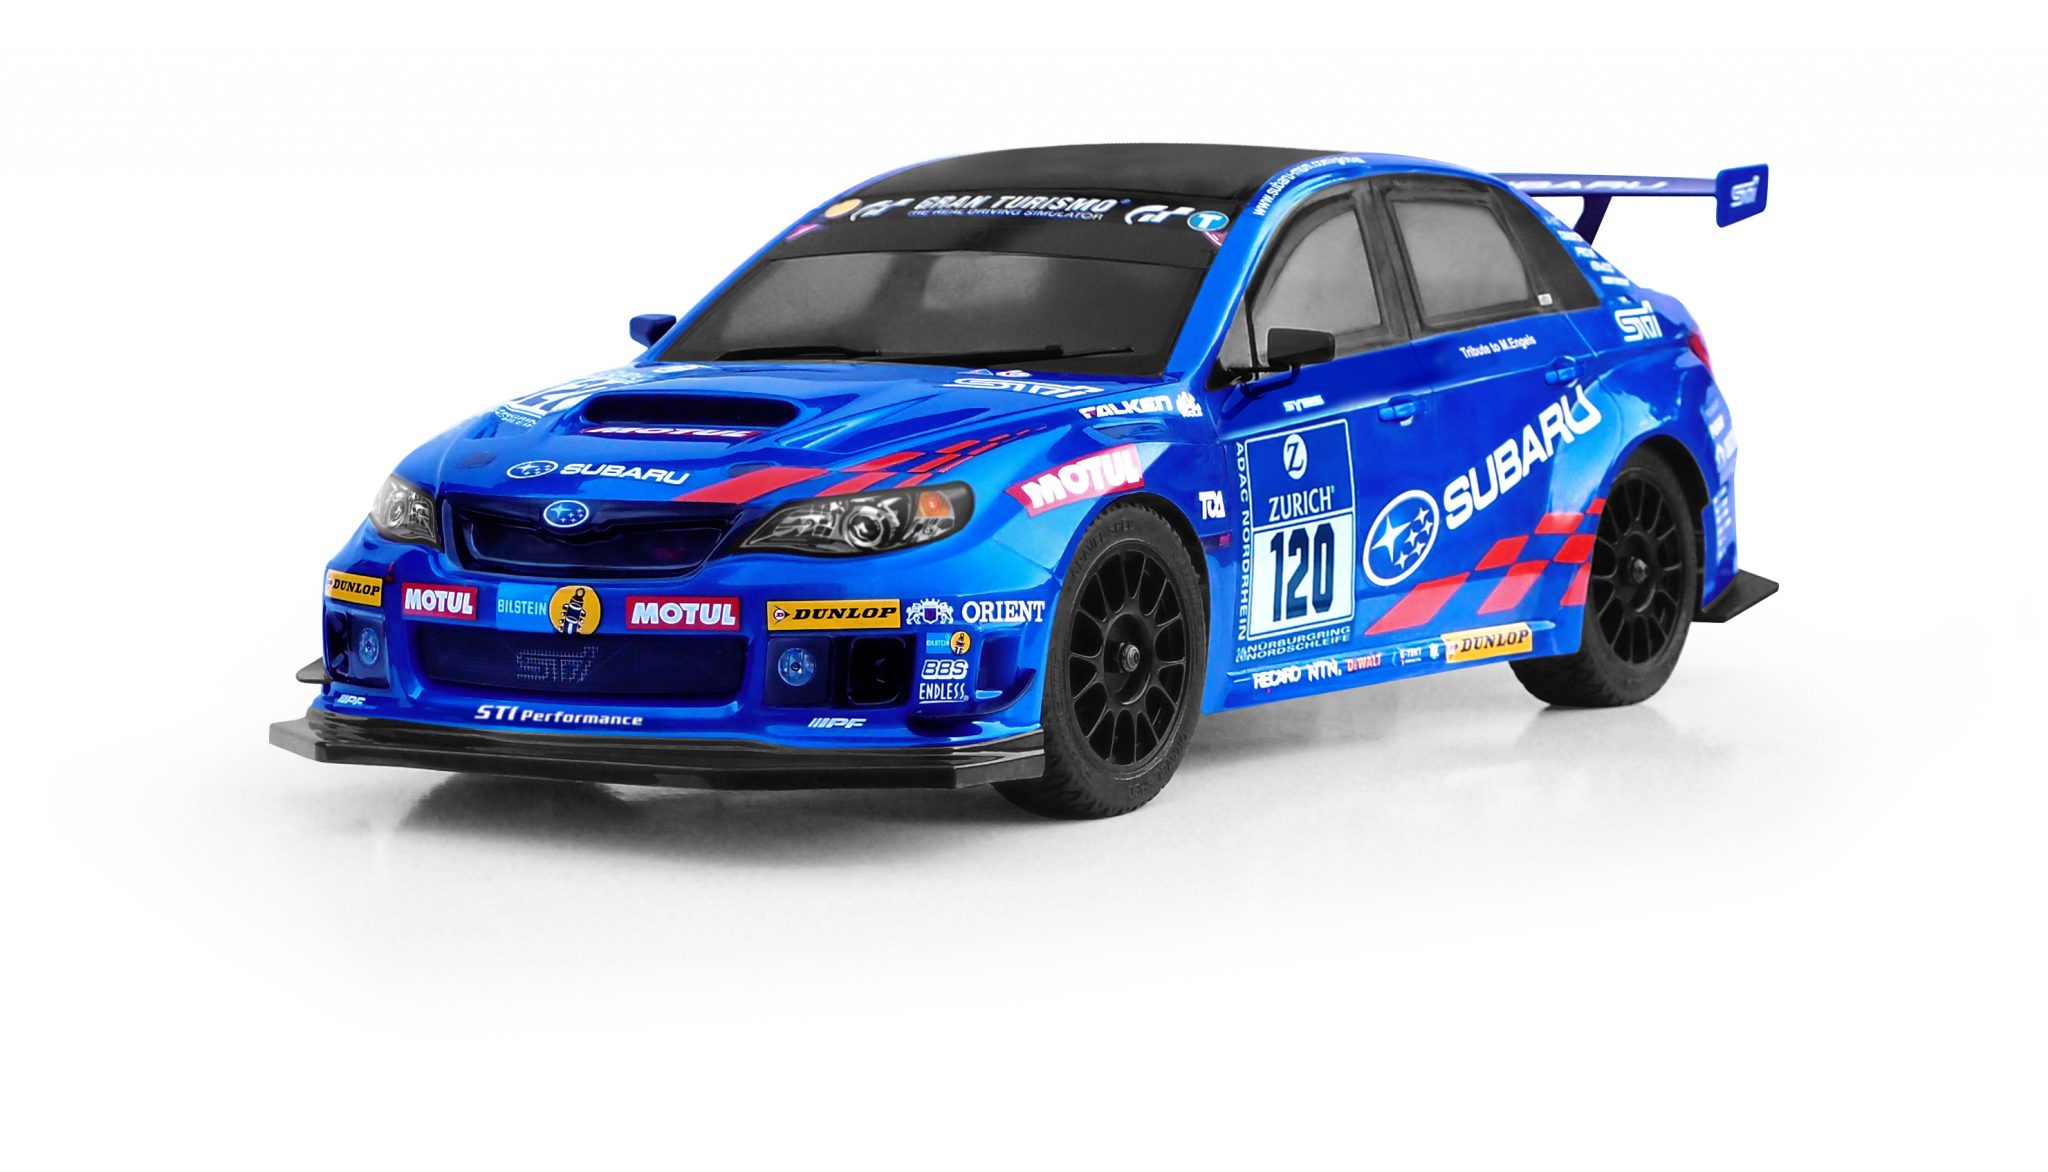 A Subaru WRX with Carisma